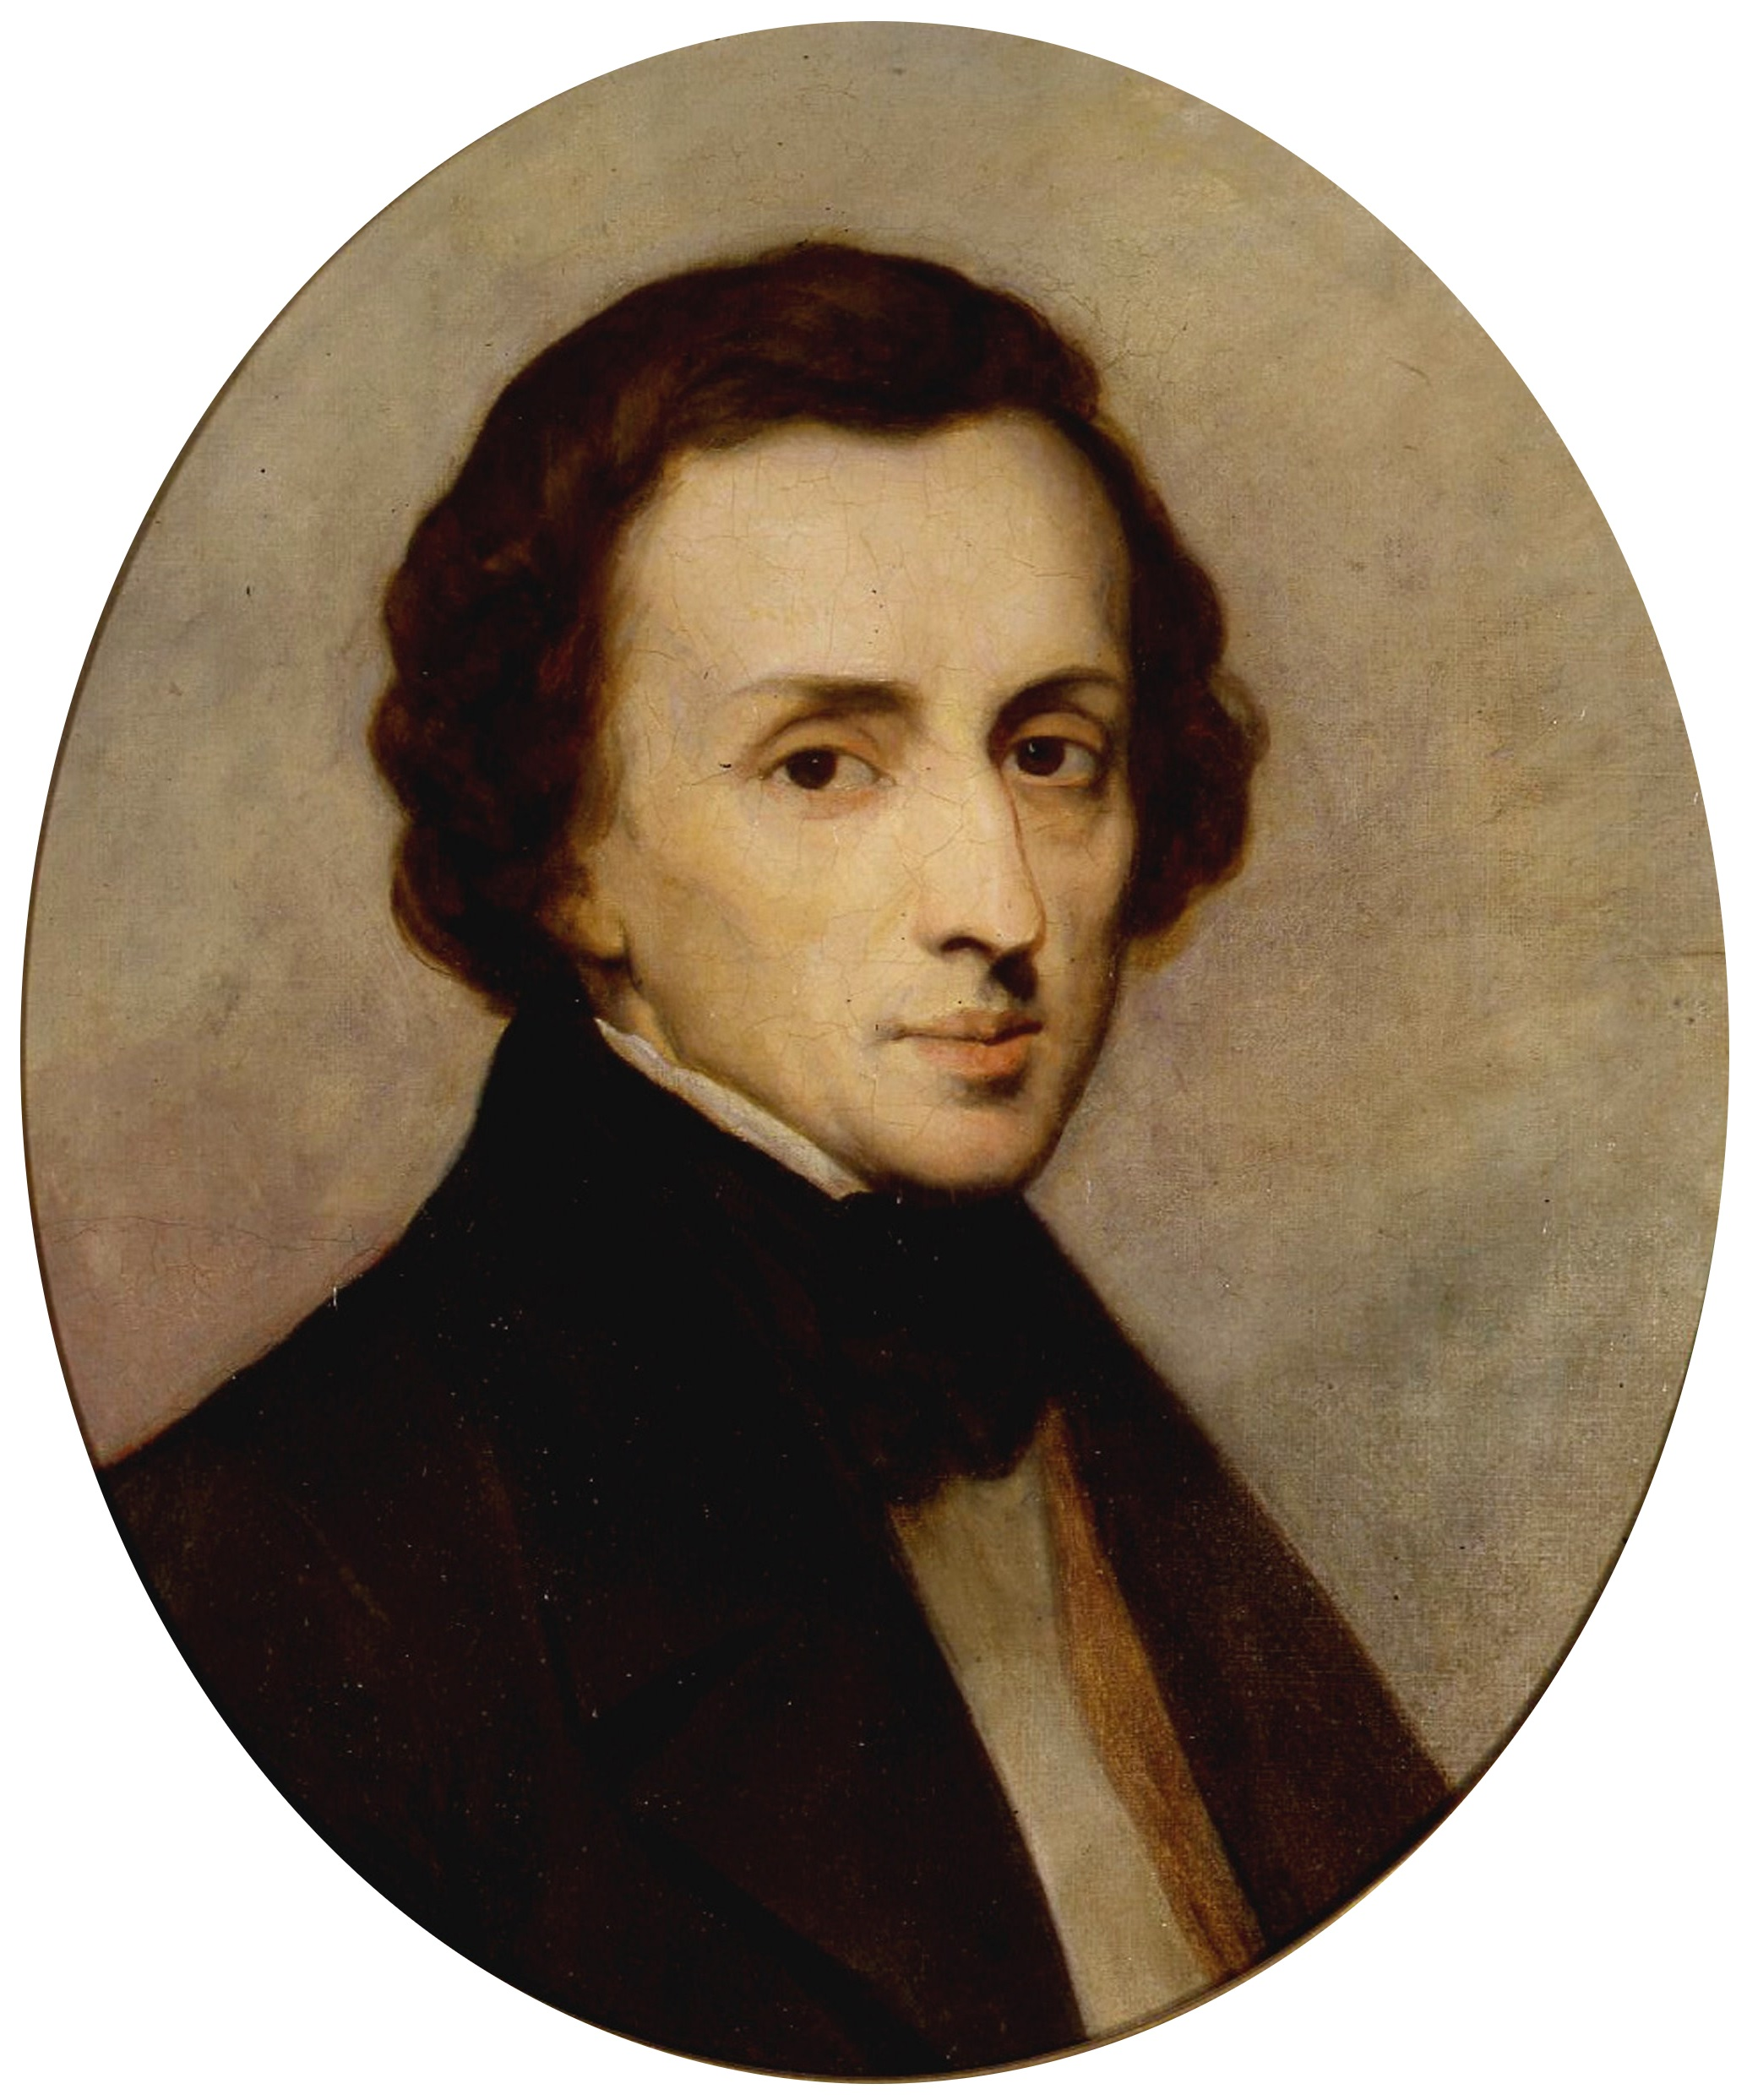 https://upload.wikimedia.org/wikipedia/commons/b/b9/Ary_Scheffer_Chopin_portrait_Dordrecht_Museum_1847.jpg